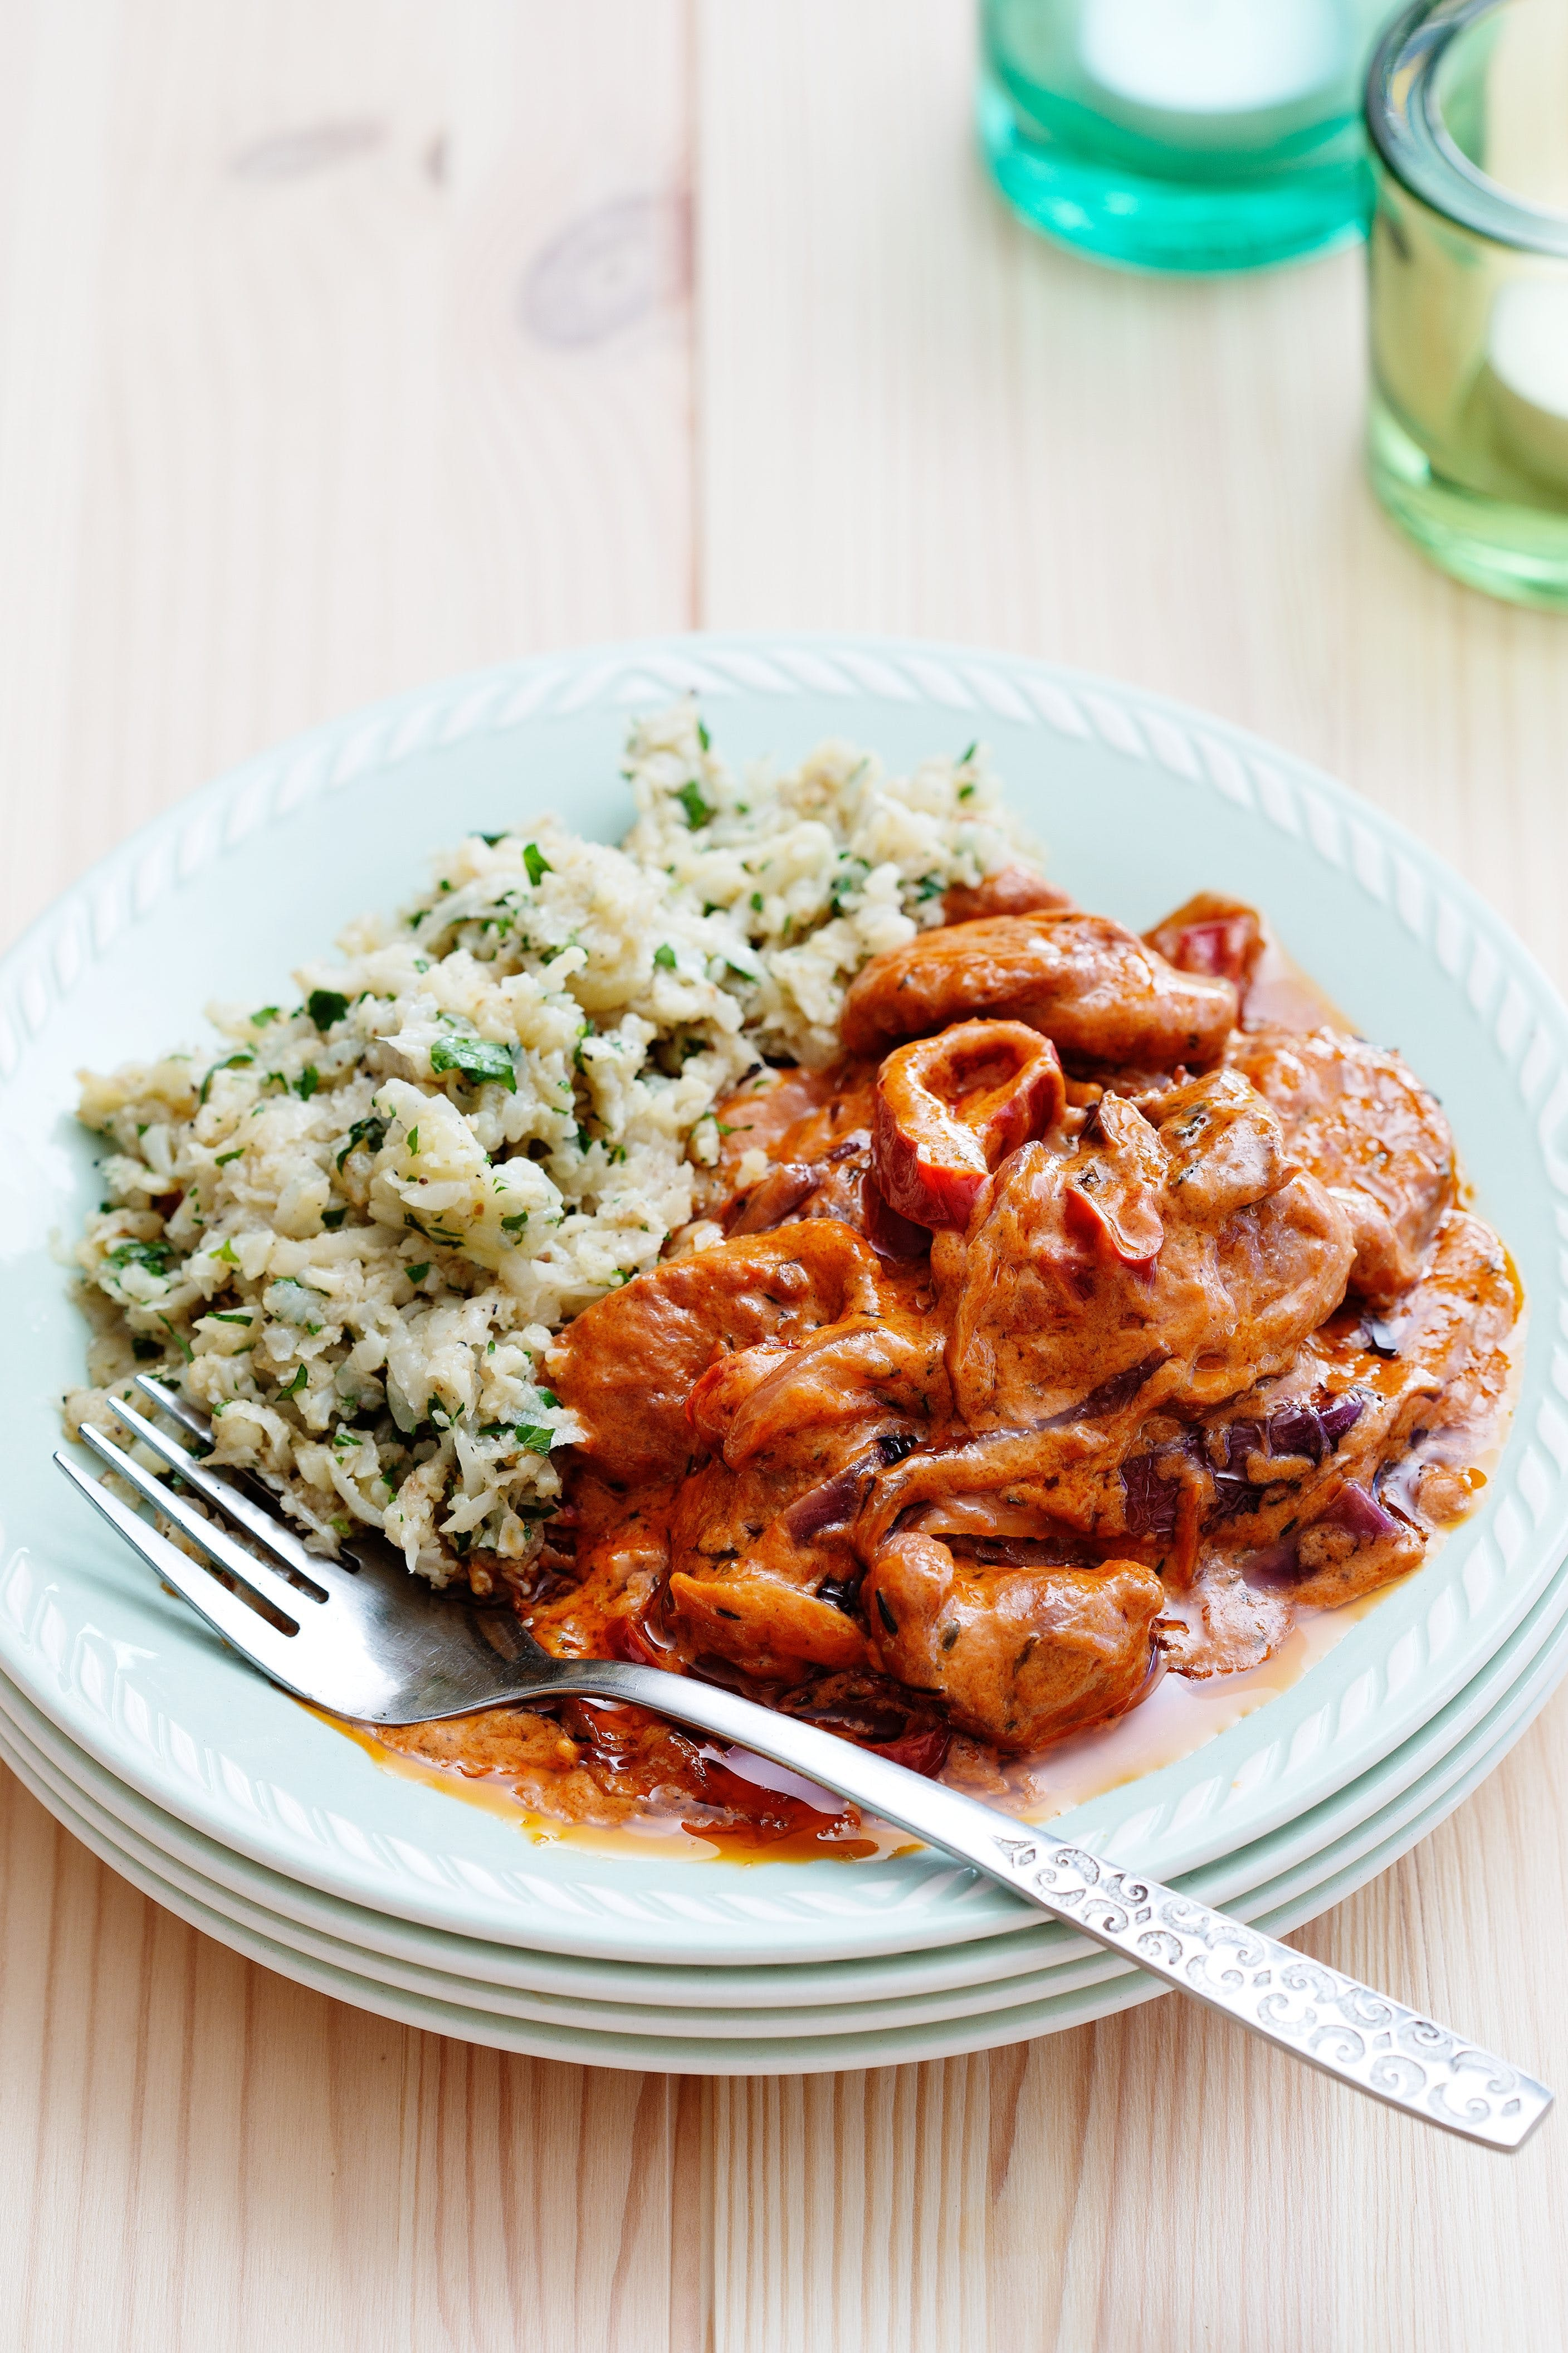 Sausage stroganoff with cauliflower and parsley rice